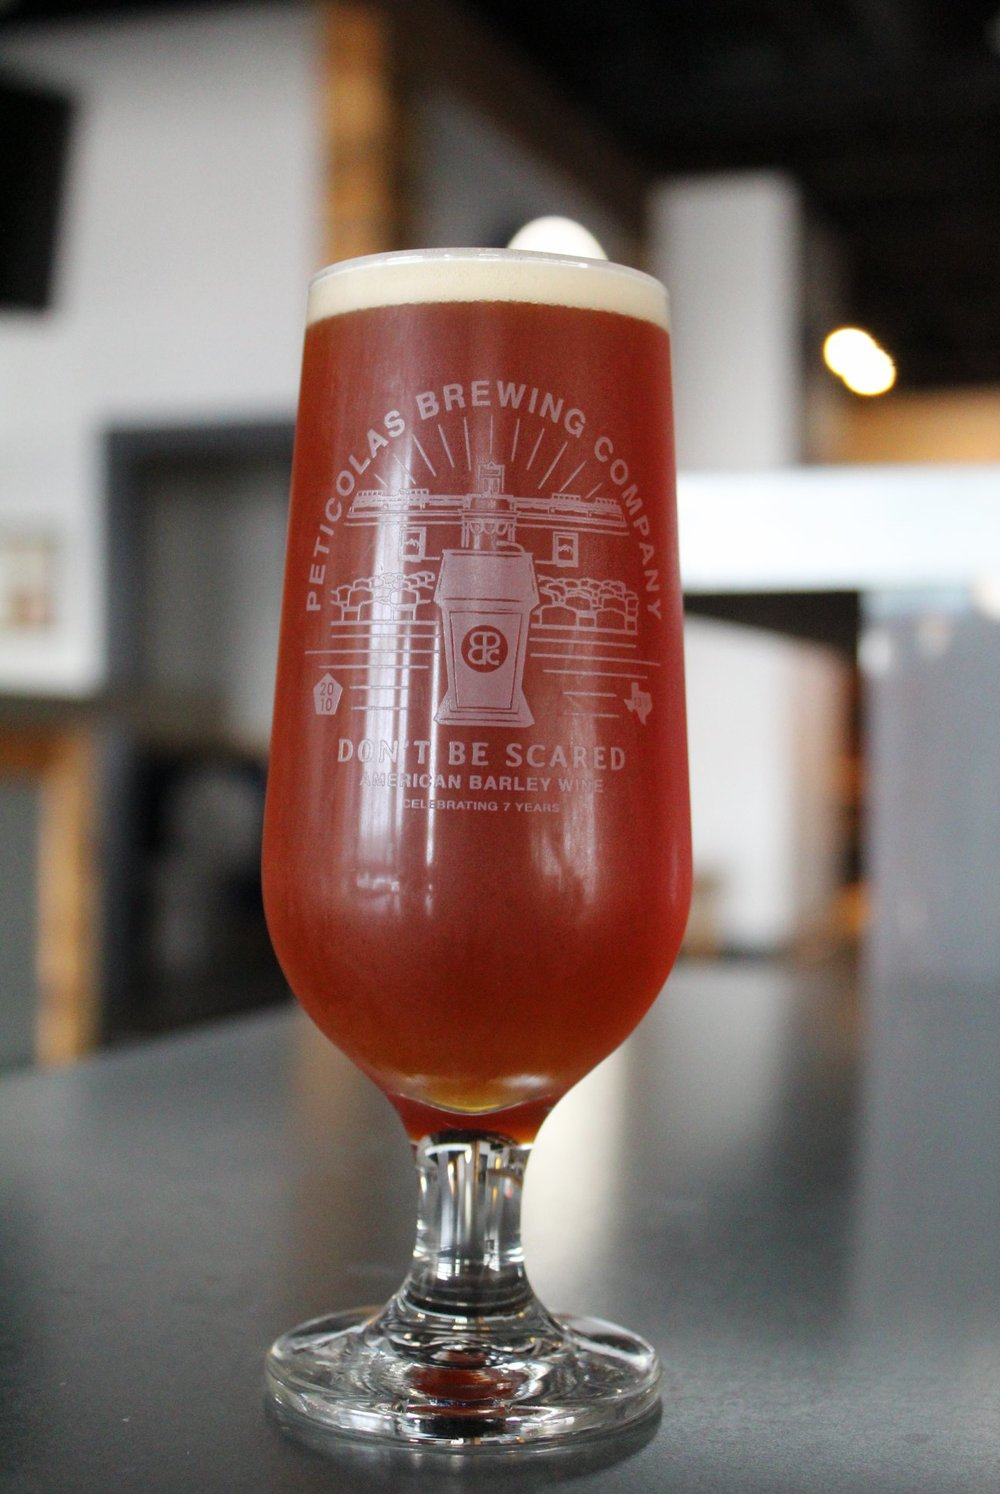 Don't Be Scared | Peticolas Brewing - Peticolas just celebrated their 7th anniversary and this barleywine was their gift to Dallas. It's barleywine season, and if there's any place to trust to get it right, it's Michael Peticolas' operation in the Design District. Head to the taproom for this limited release and remember: It might check in at 13% ABV and >100 IBU, but don't be scared.